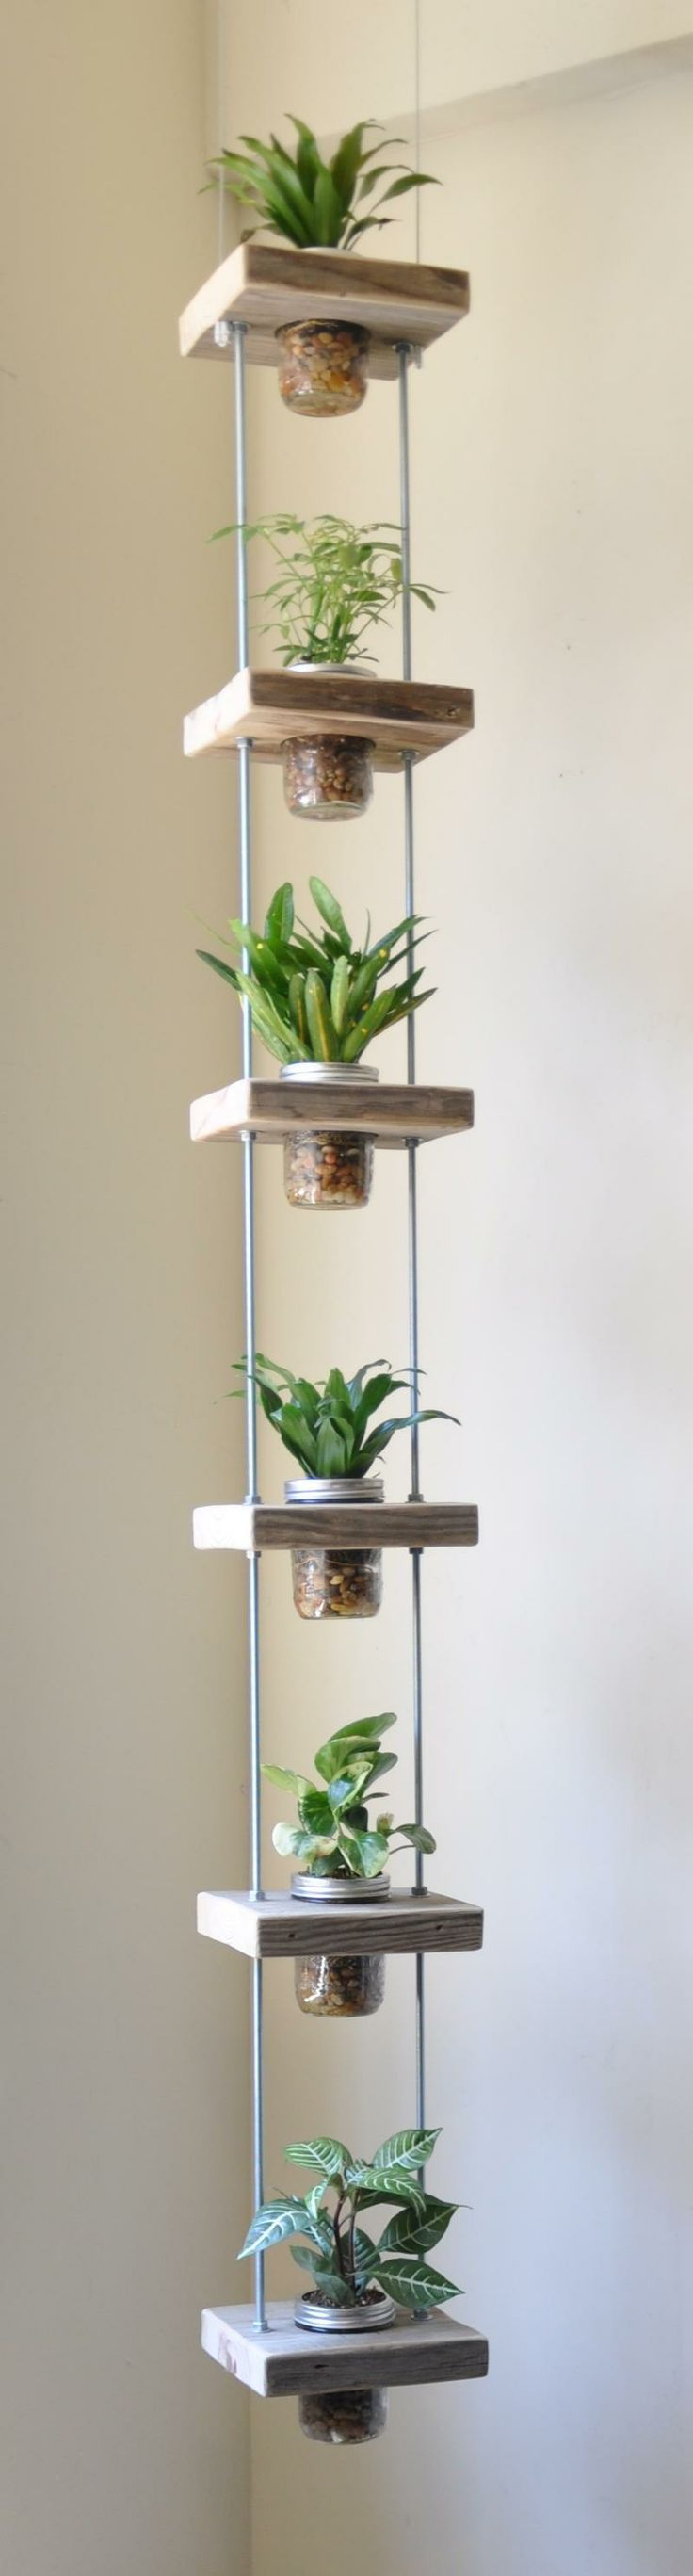 vertical hanging herbs